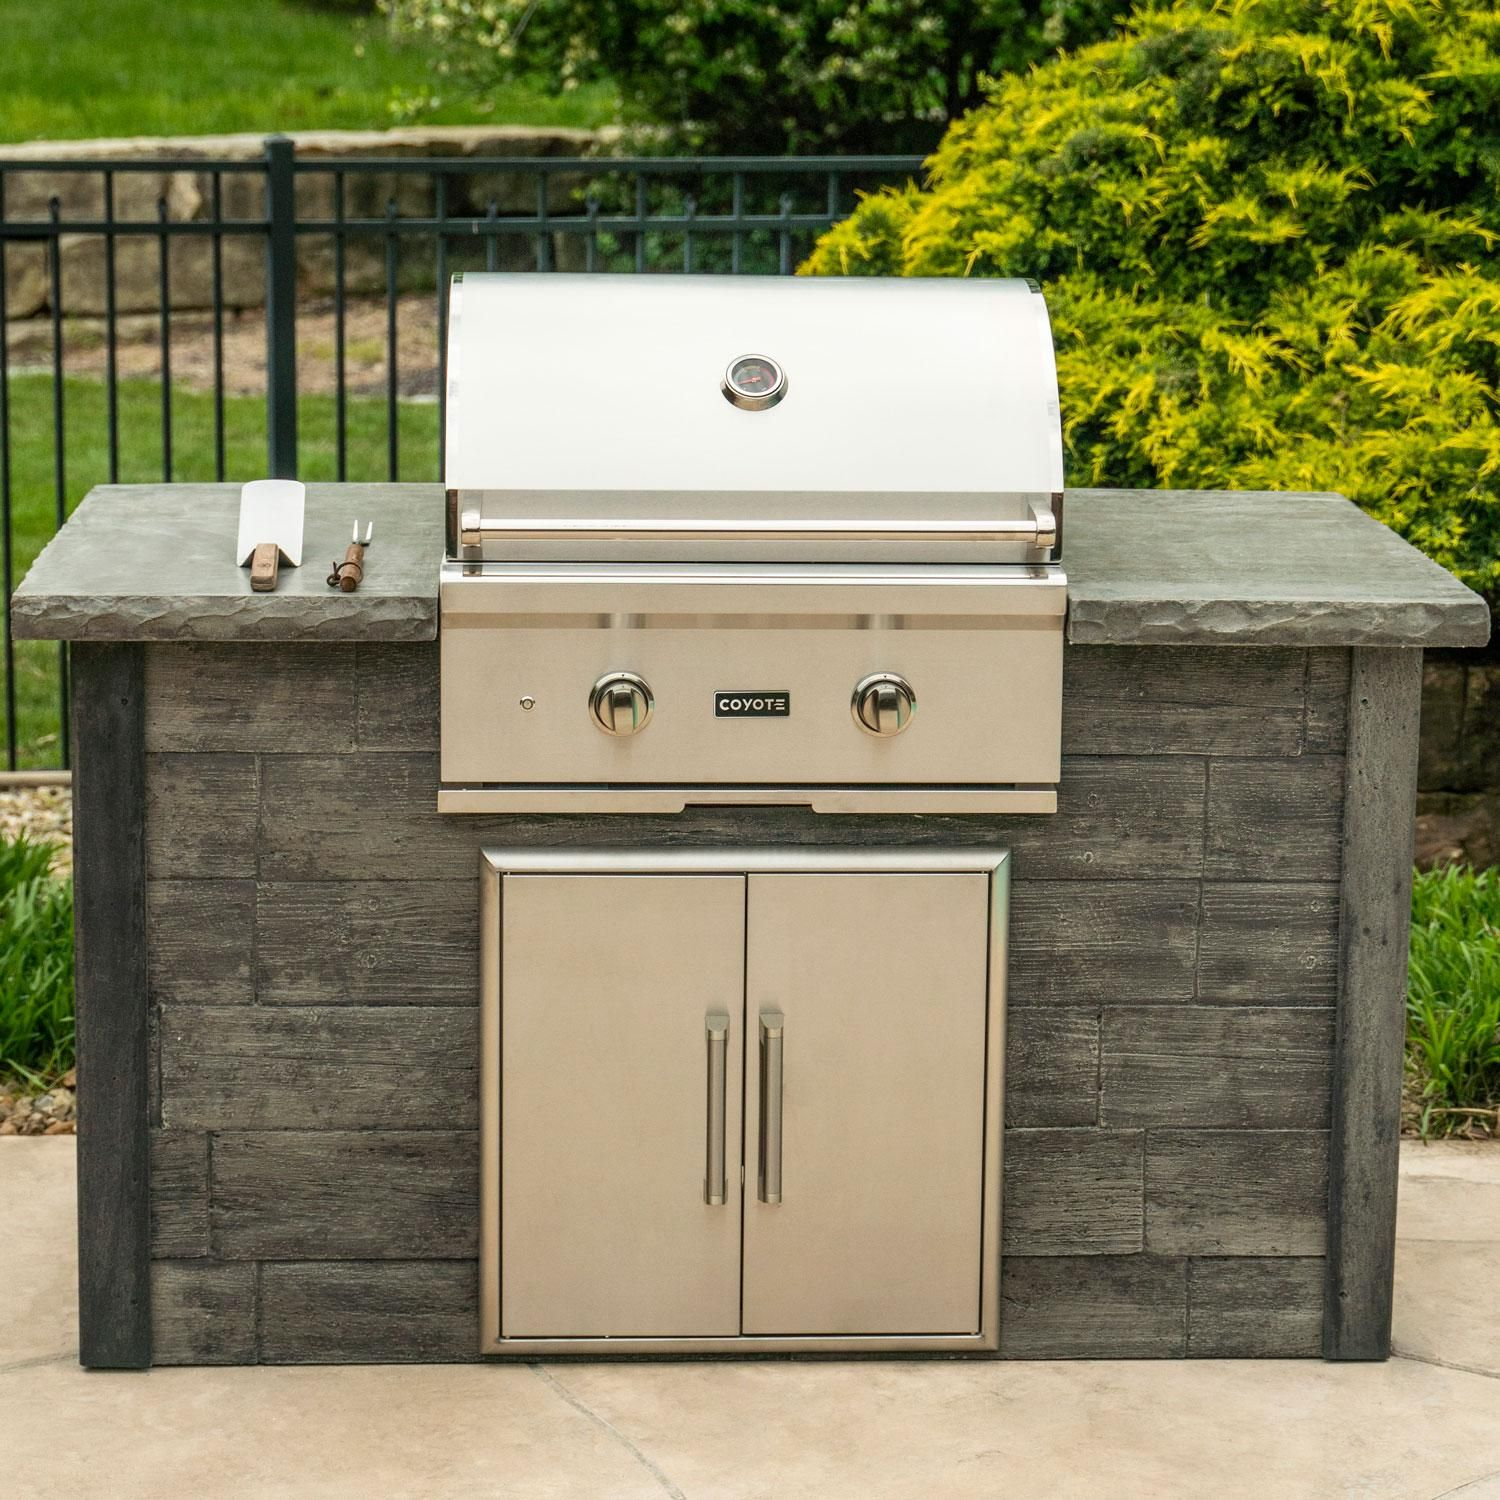 Coyote Ready To Assemble 5 Ft Outdoor Kitchen Island With 28 Inch C Series Natural Gas Grill Ships As Propane With Conversion Fittings Weathered Wood Stone Outdoor Kitchen Island Outdoor Kitchen Bbq Grill Island